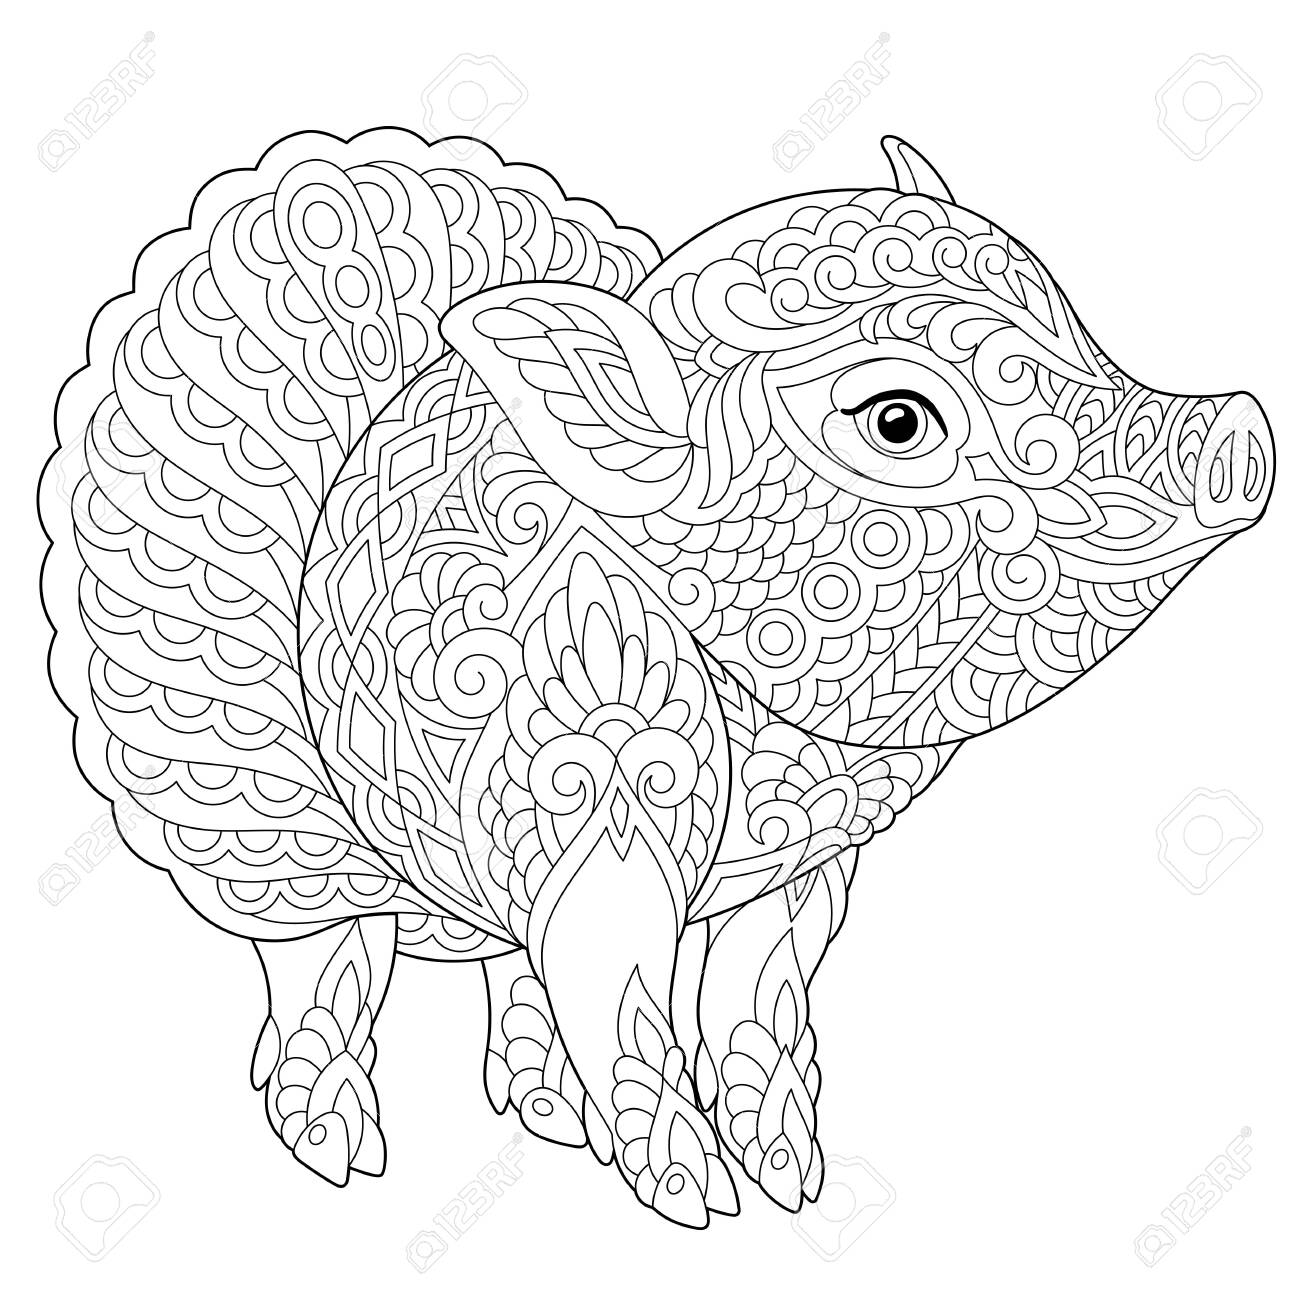 Pig Coloring Page Anti Stress Colouring Picture With Cute Piggy Royalty Free Cliparts Vectors And Stock Illustration Image 133791423